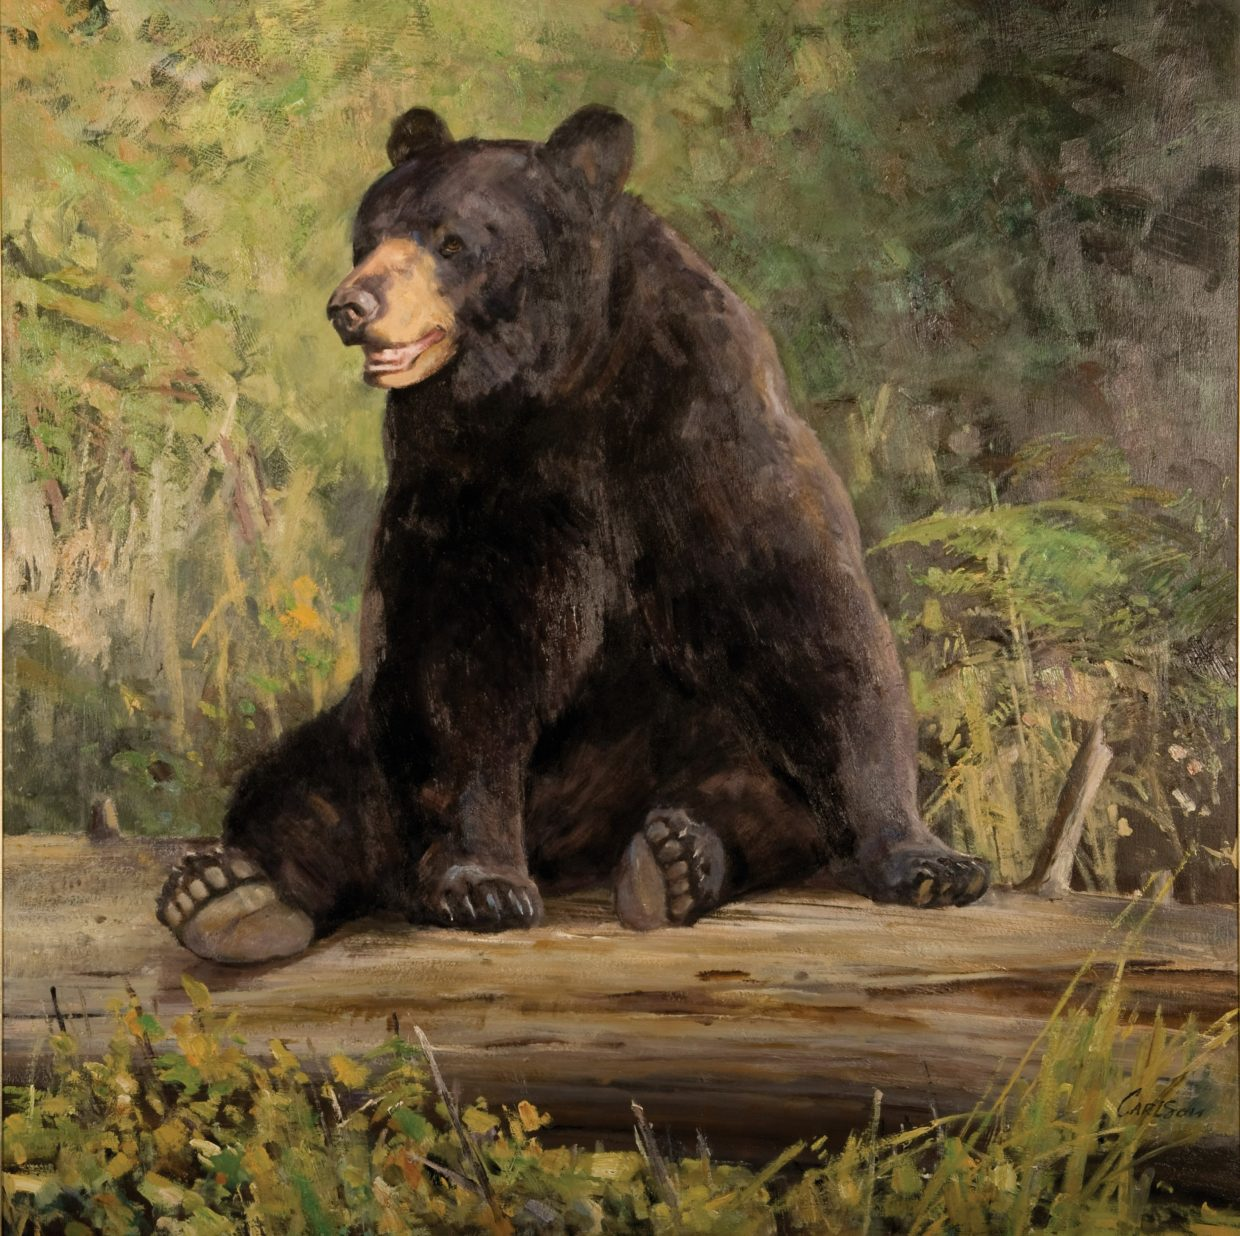 In some paintings Ken Carlson abstracts the landscape, making the wildlife subject stand out. That technique is seen in this Carlson painting of a black bear.